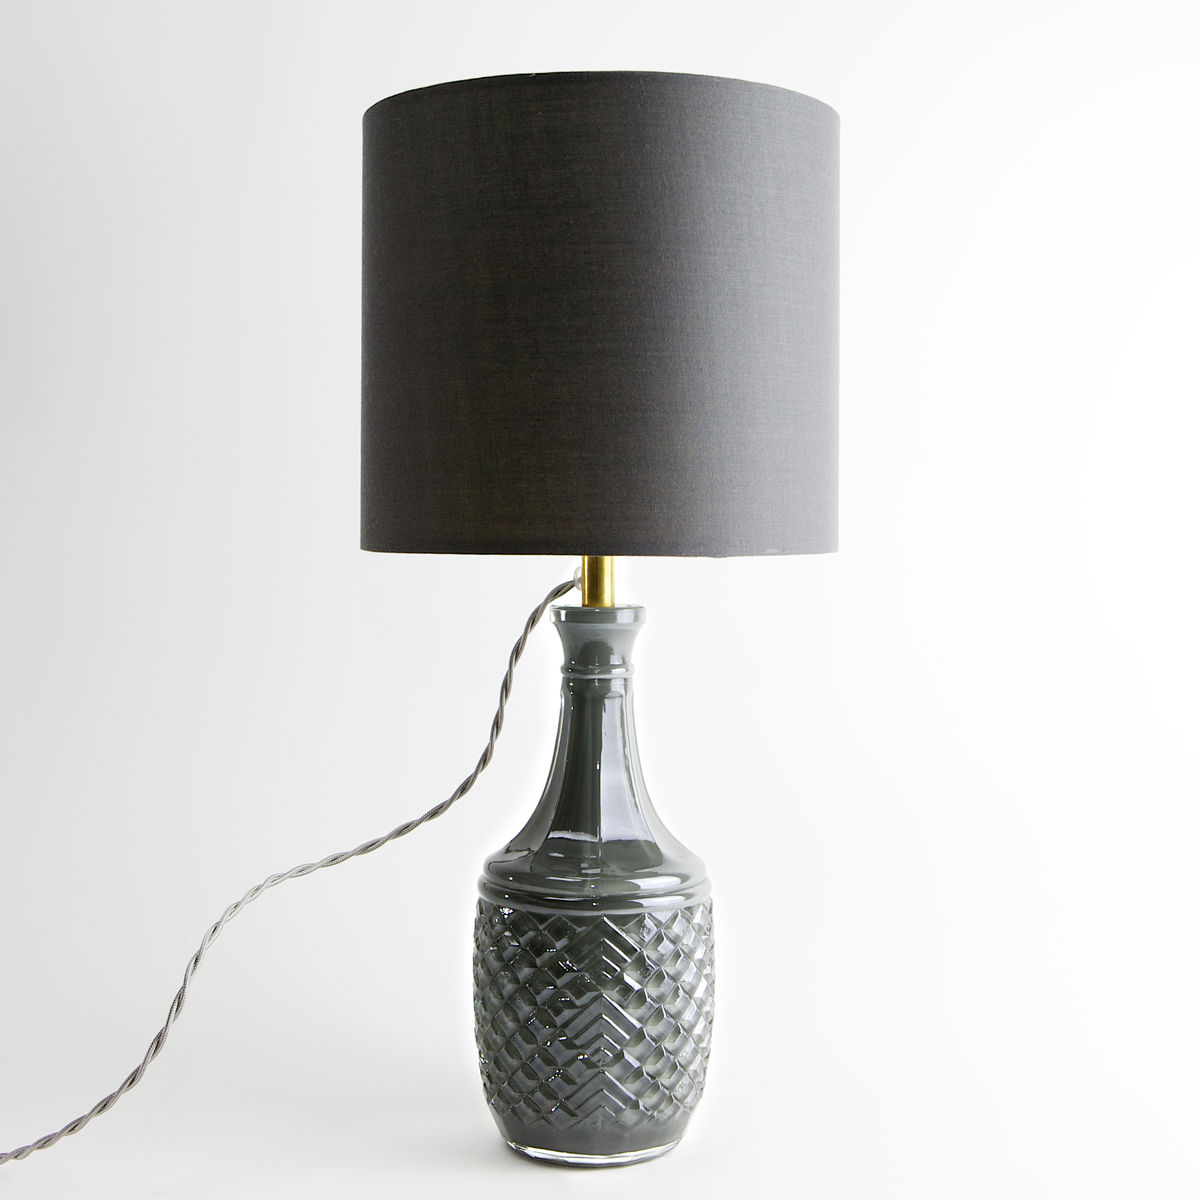 Grey Art Deco Geometric Decanter Lamp - product images  of